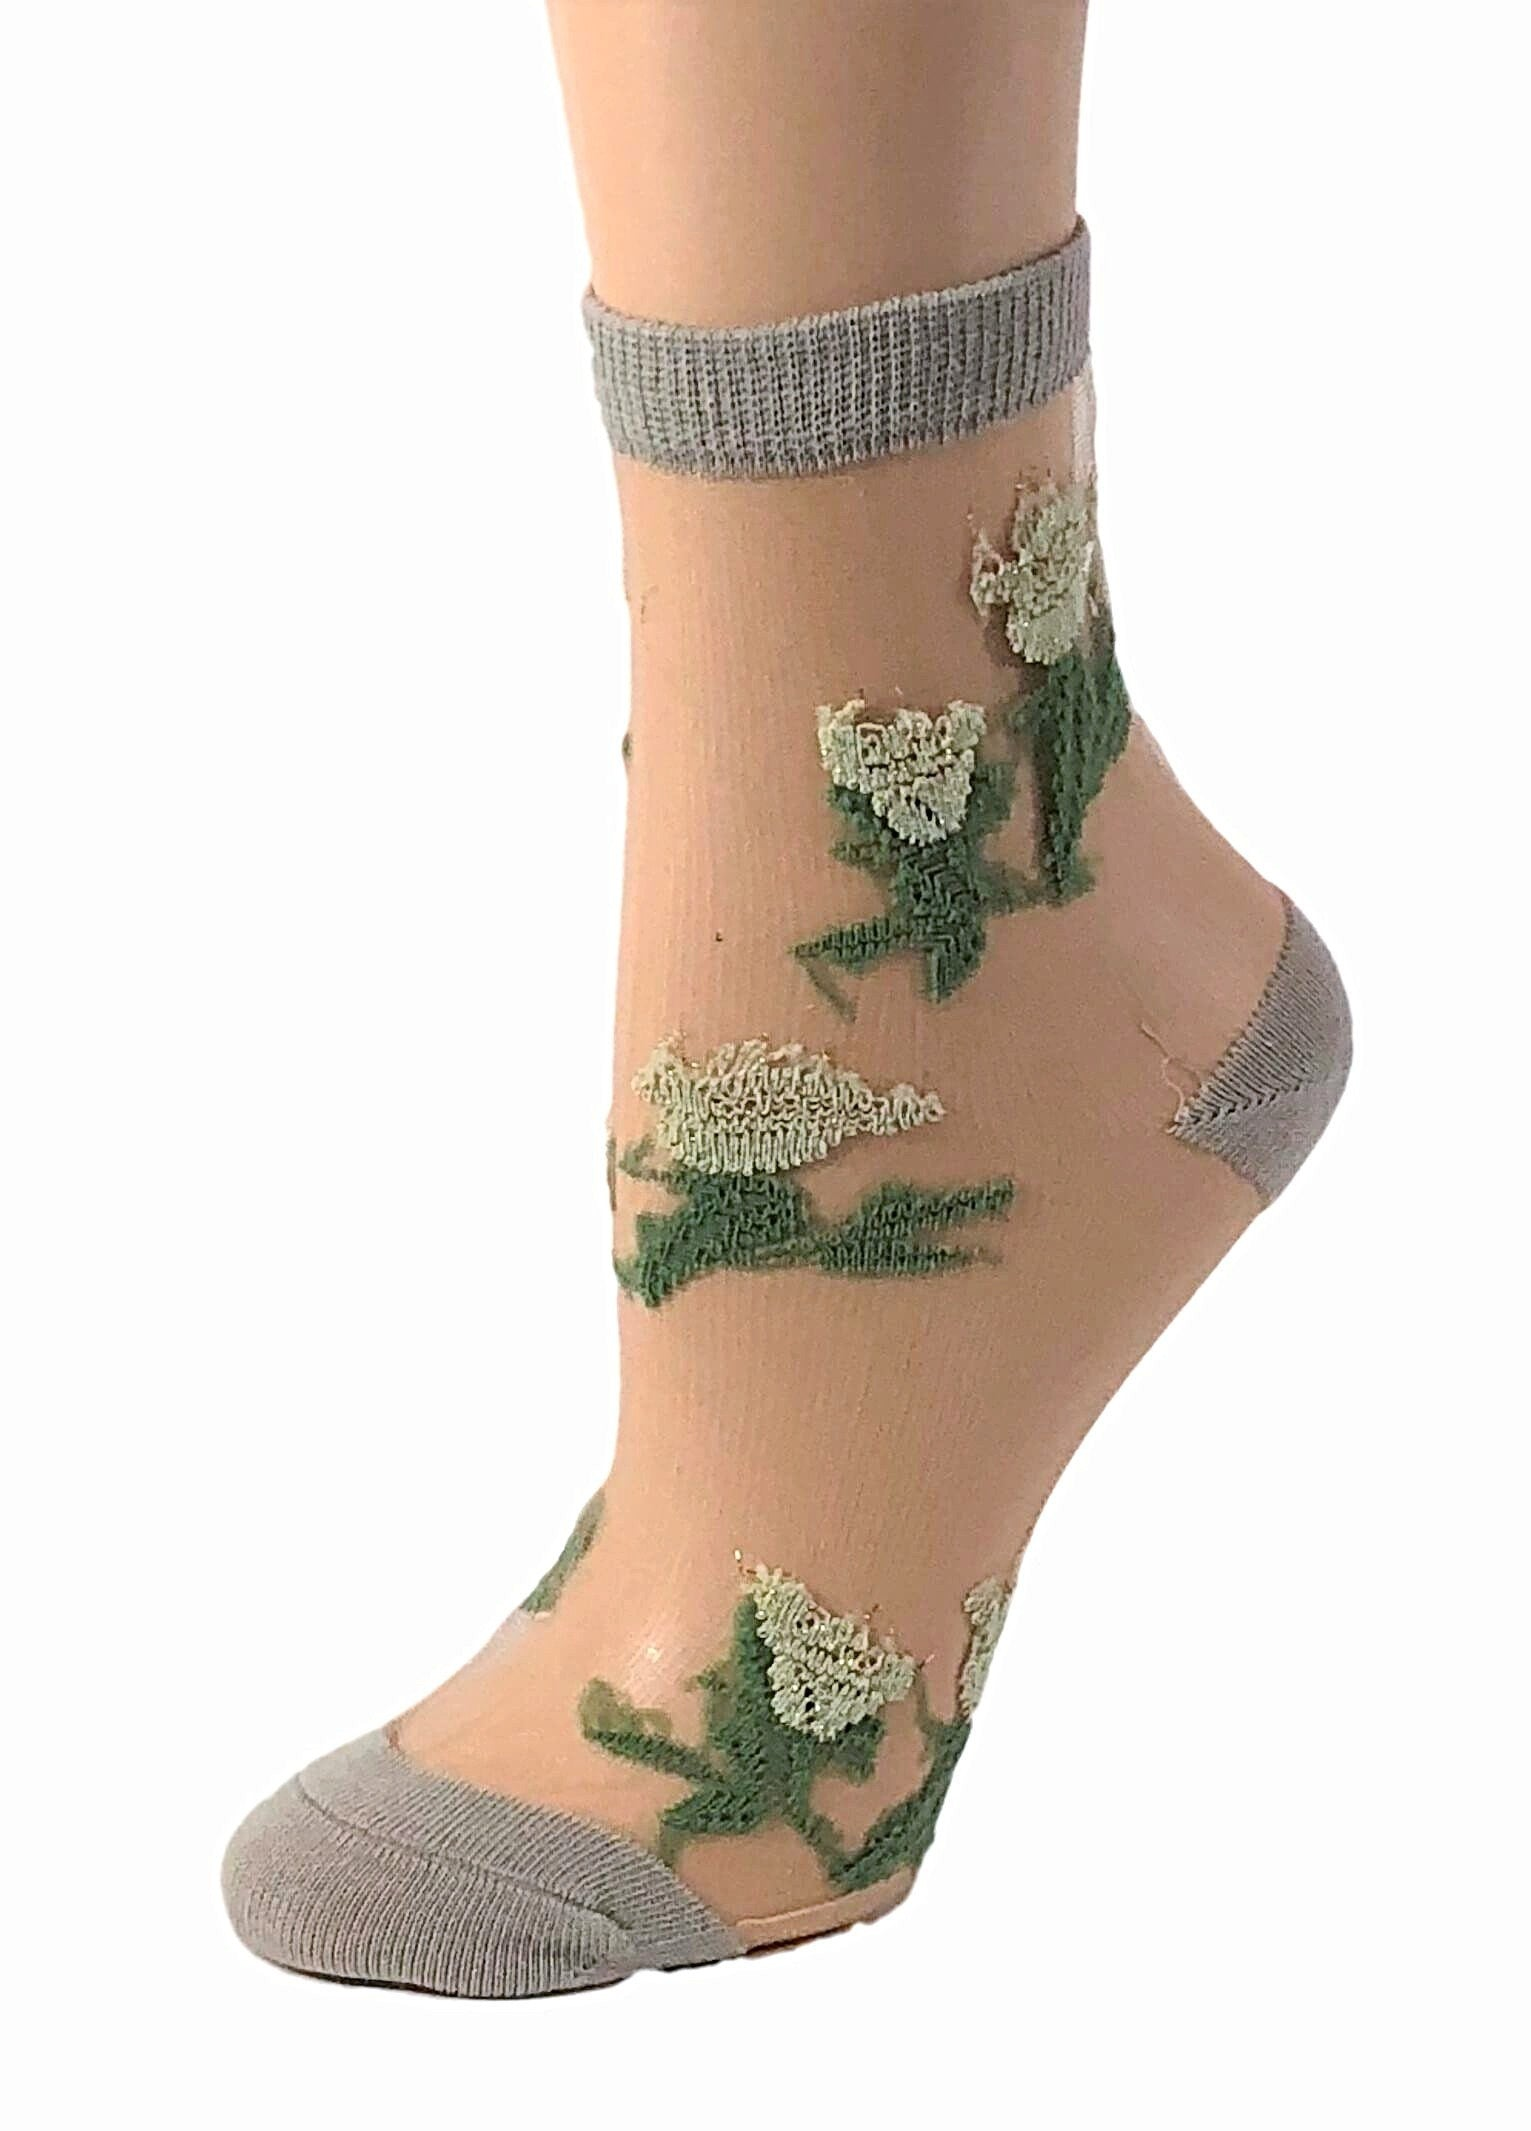 Snazzy Green Flowers Sheer Socks - Global Trendz Fashion®